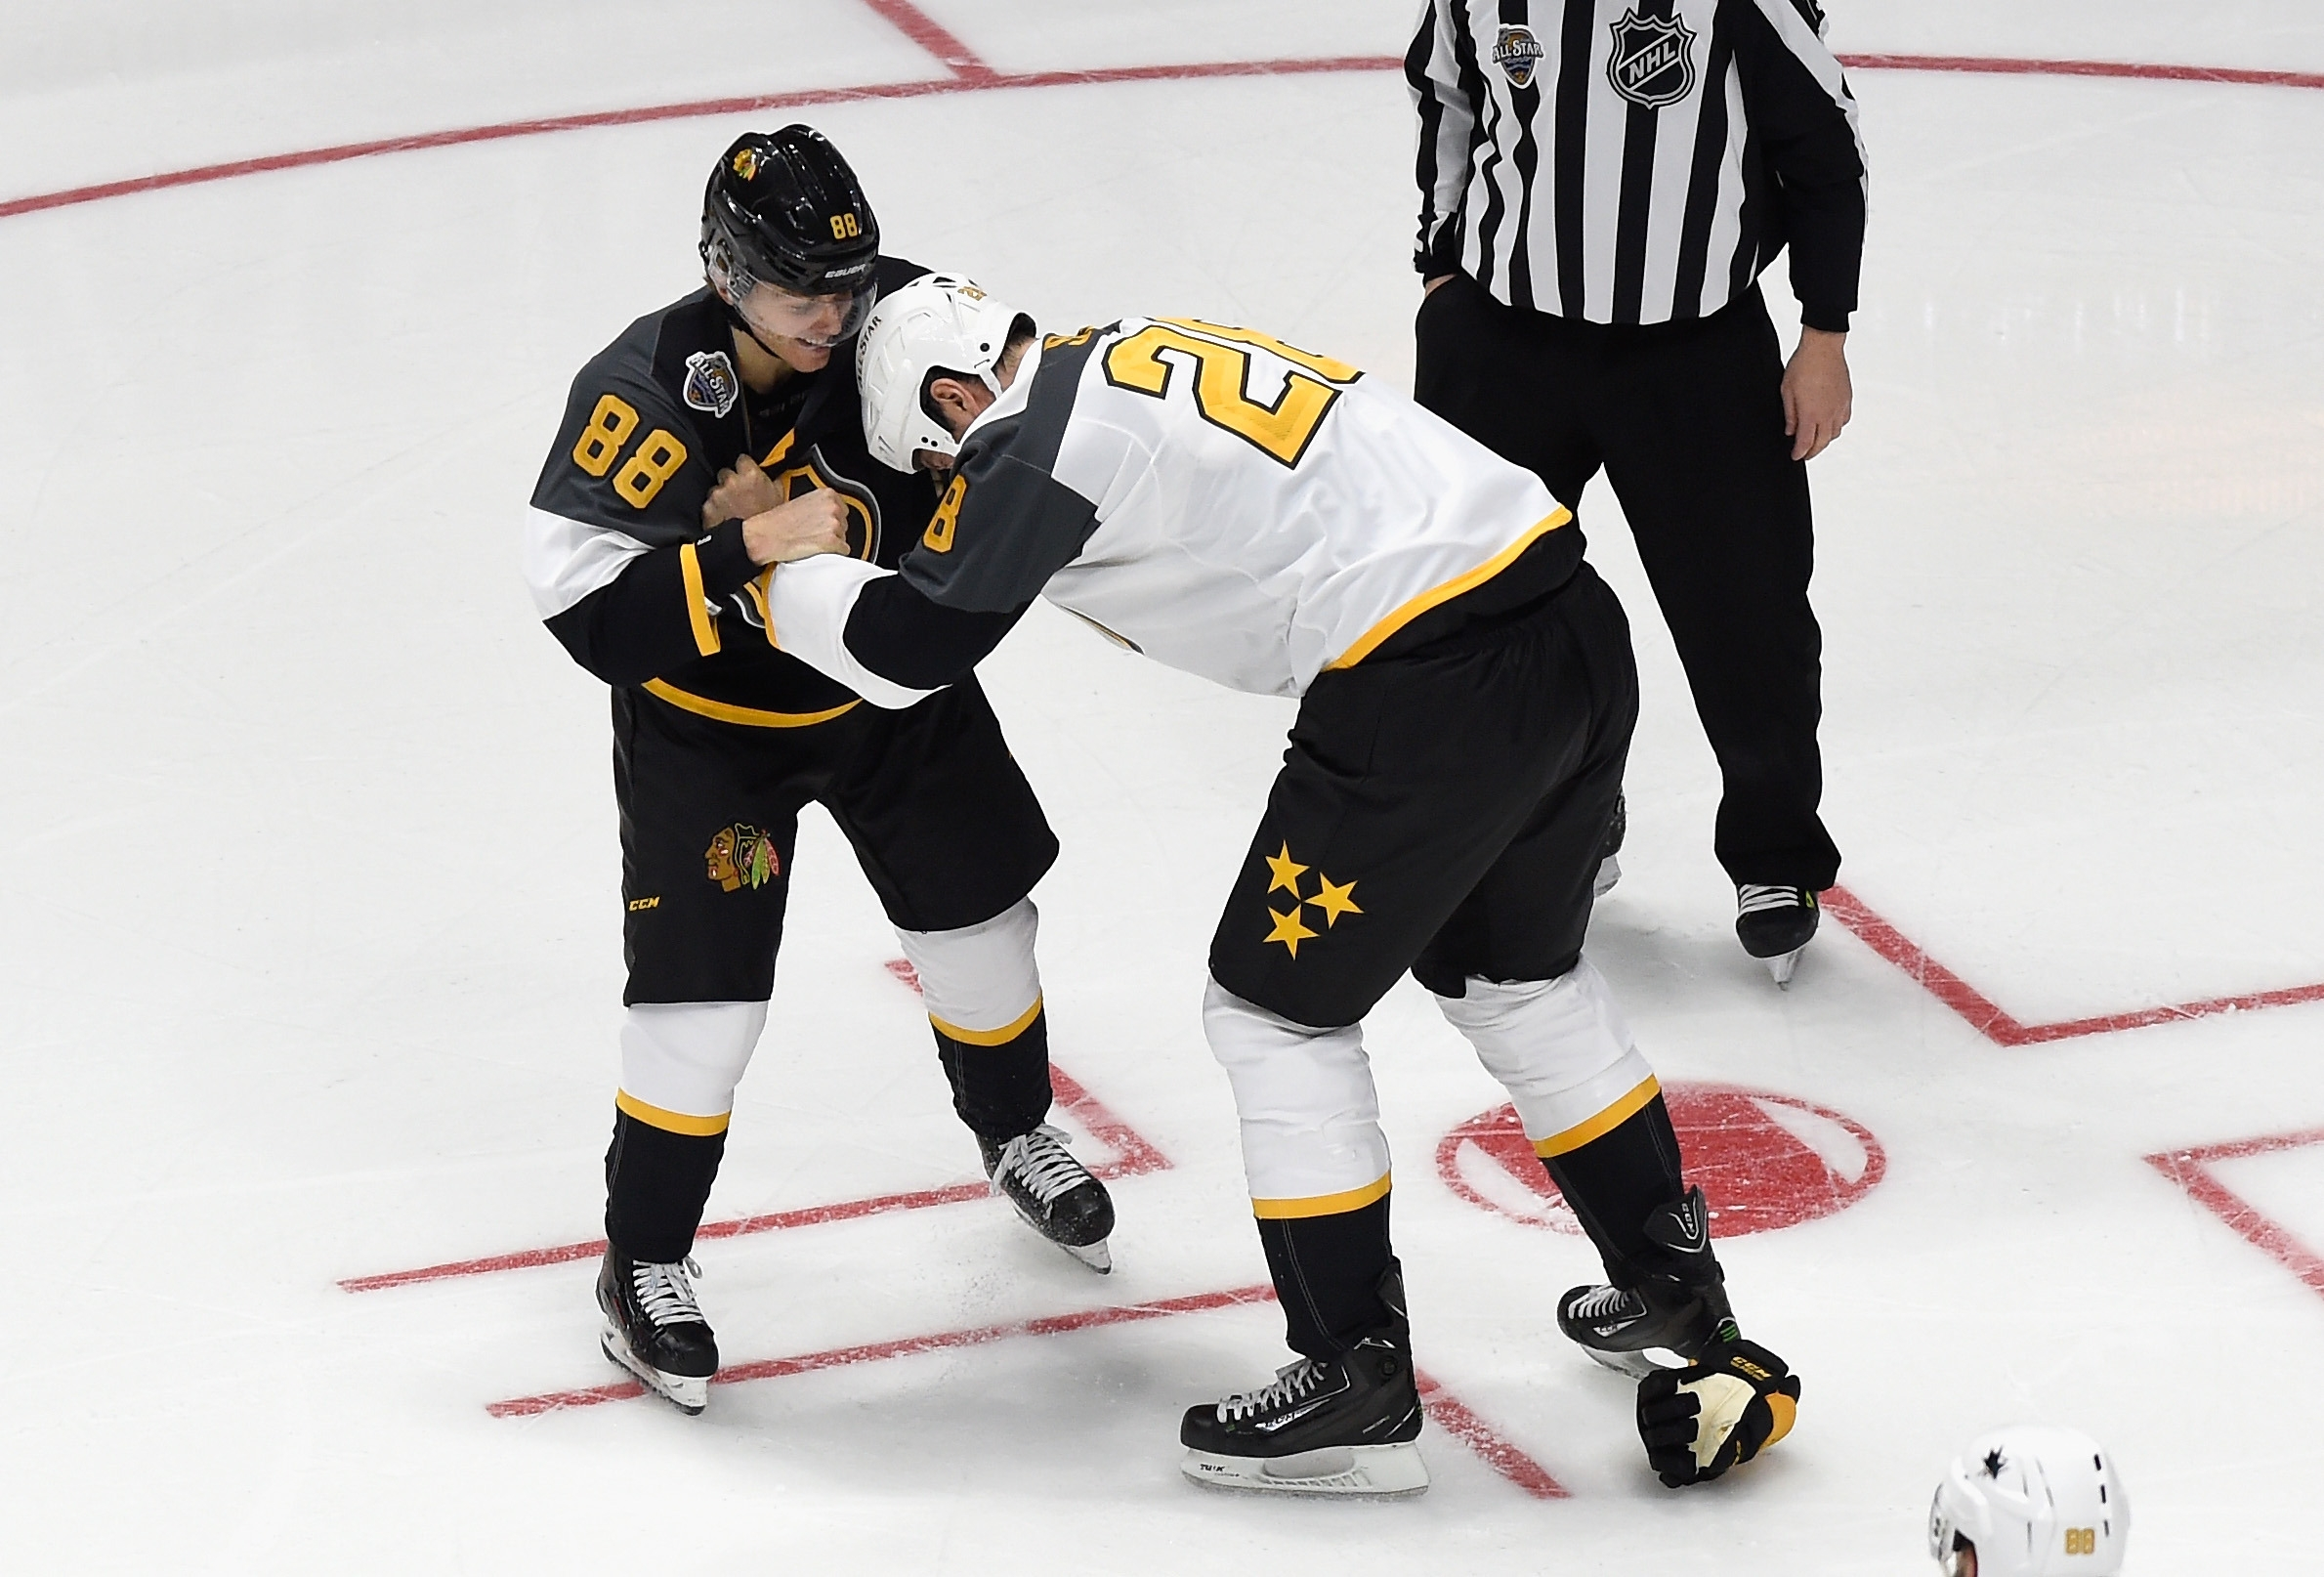 John Scott and Patrick Kane jokingly square off after Scott hit Kane during the All-Star Game in Nashville.